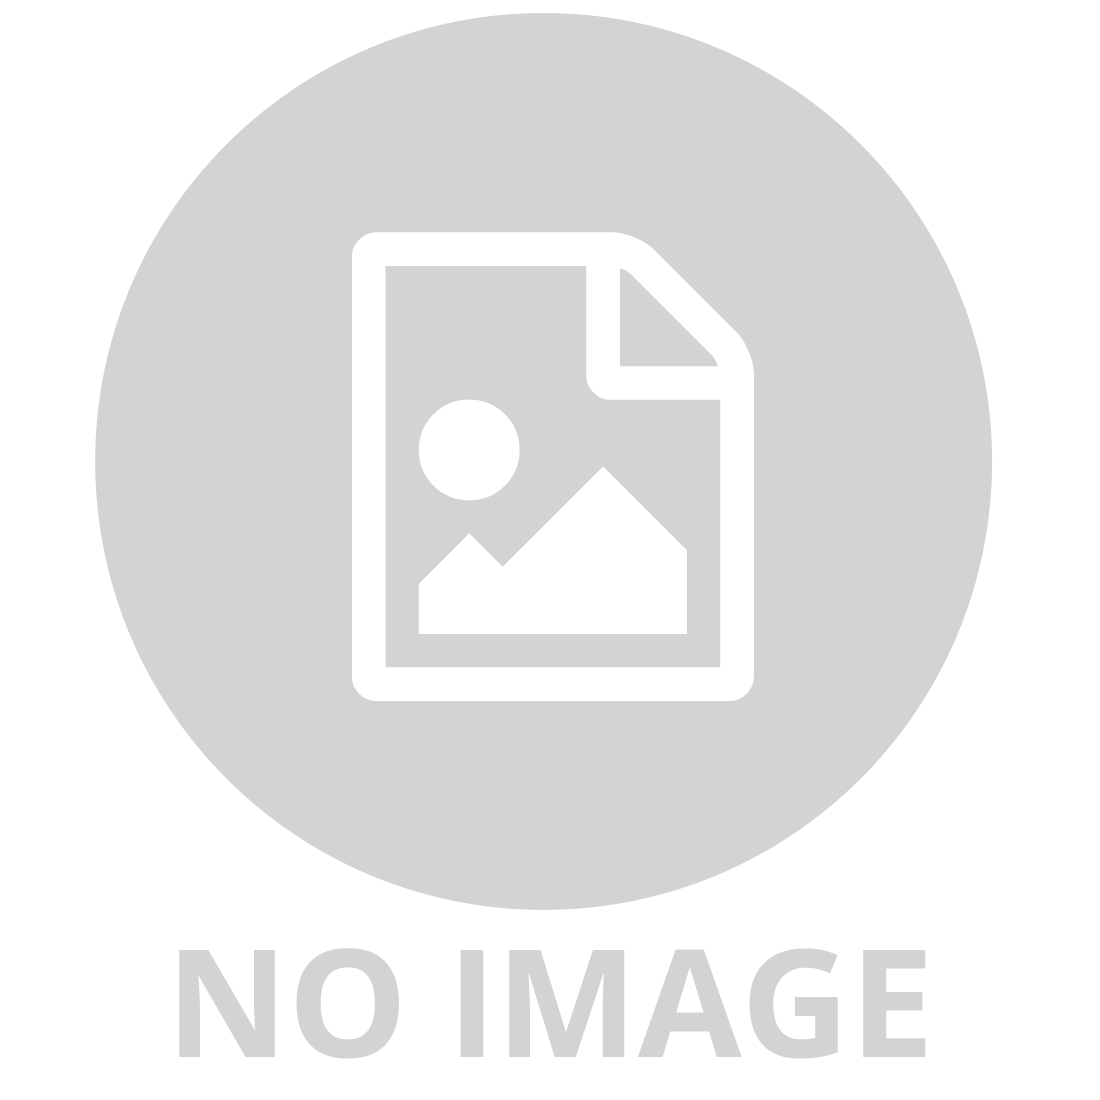 Airbus 200 Round LED Covers - Group